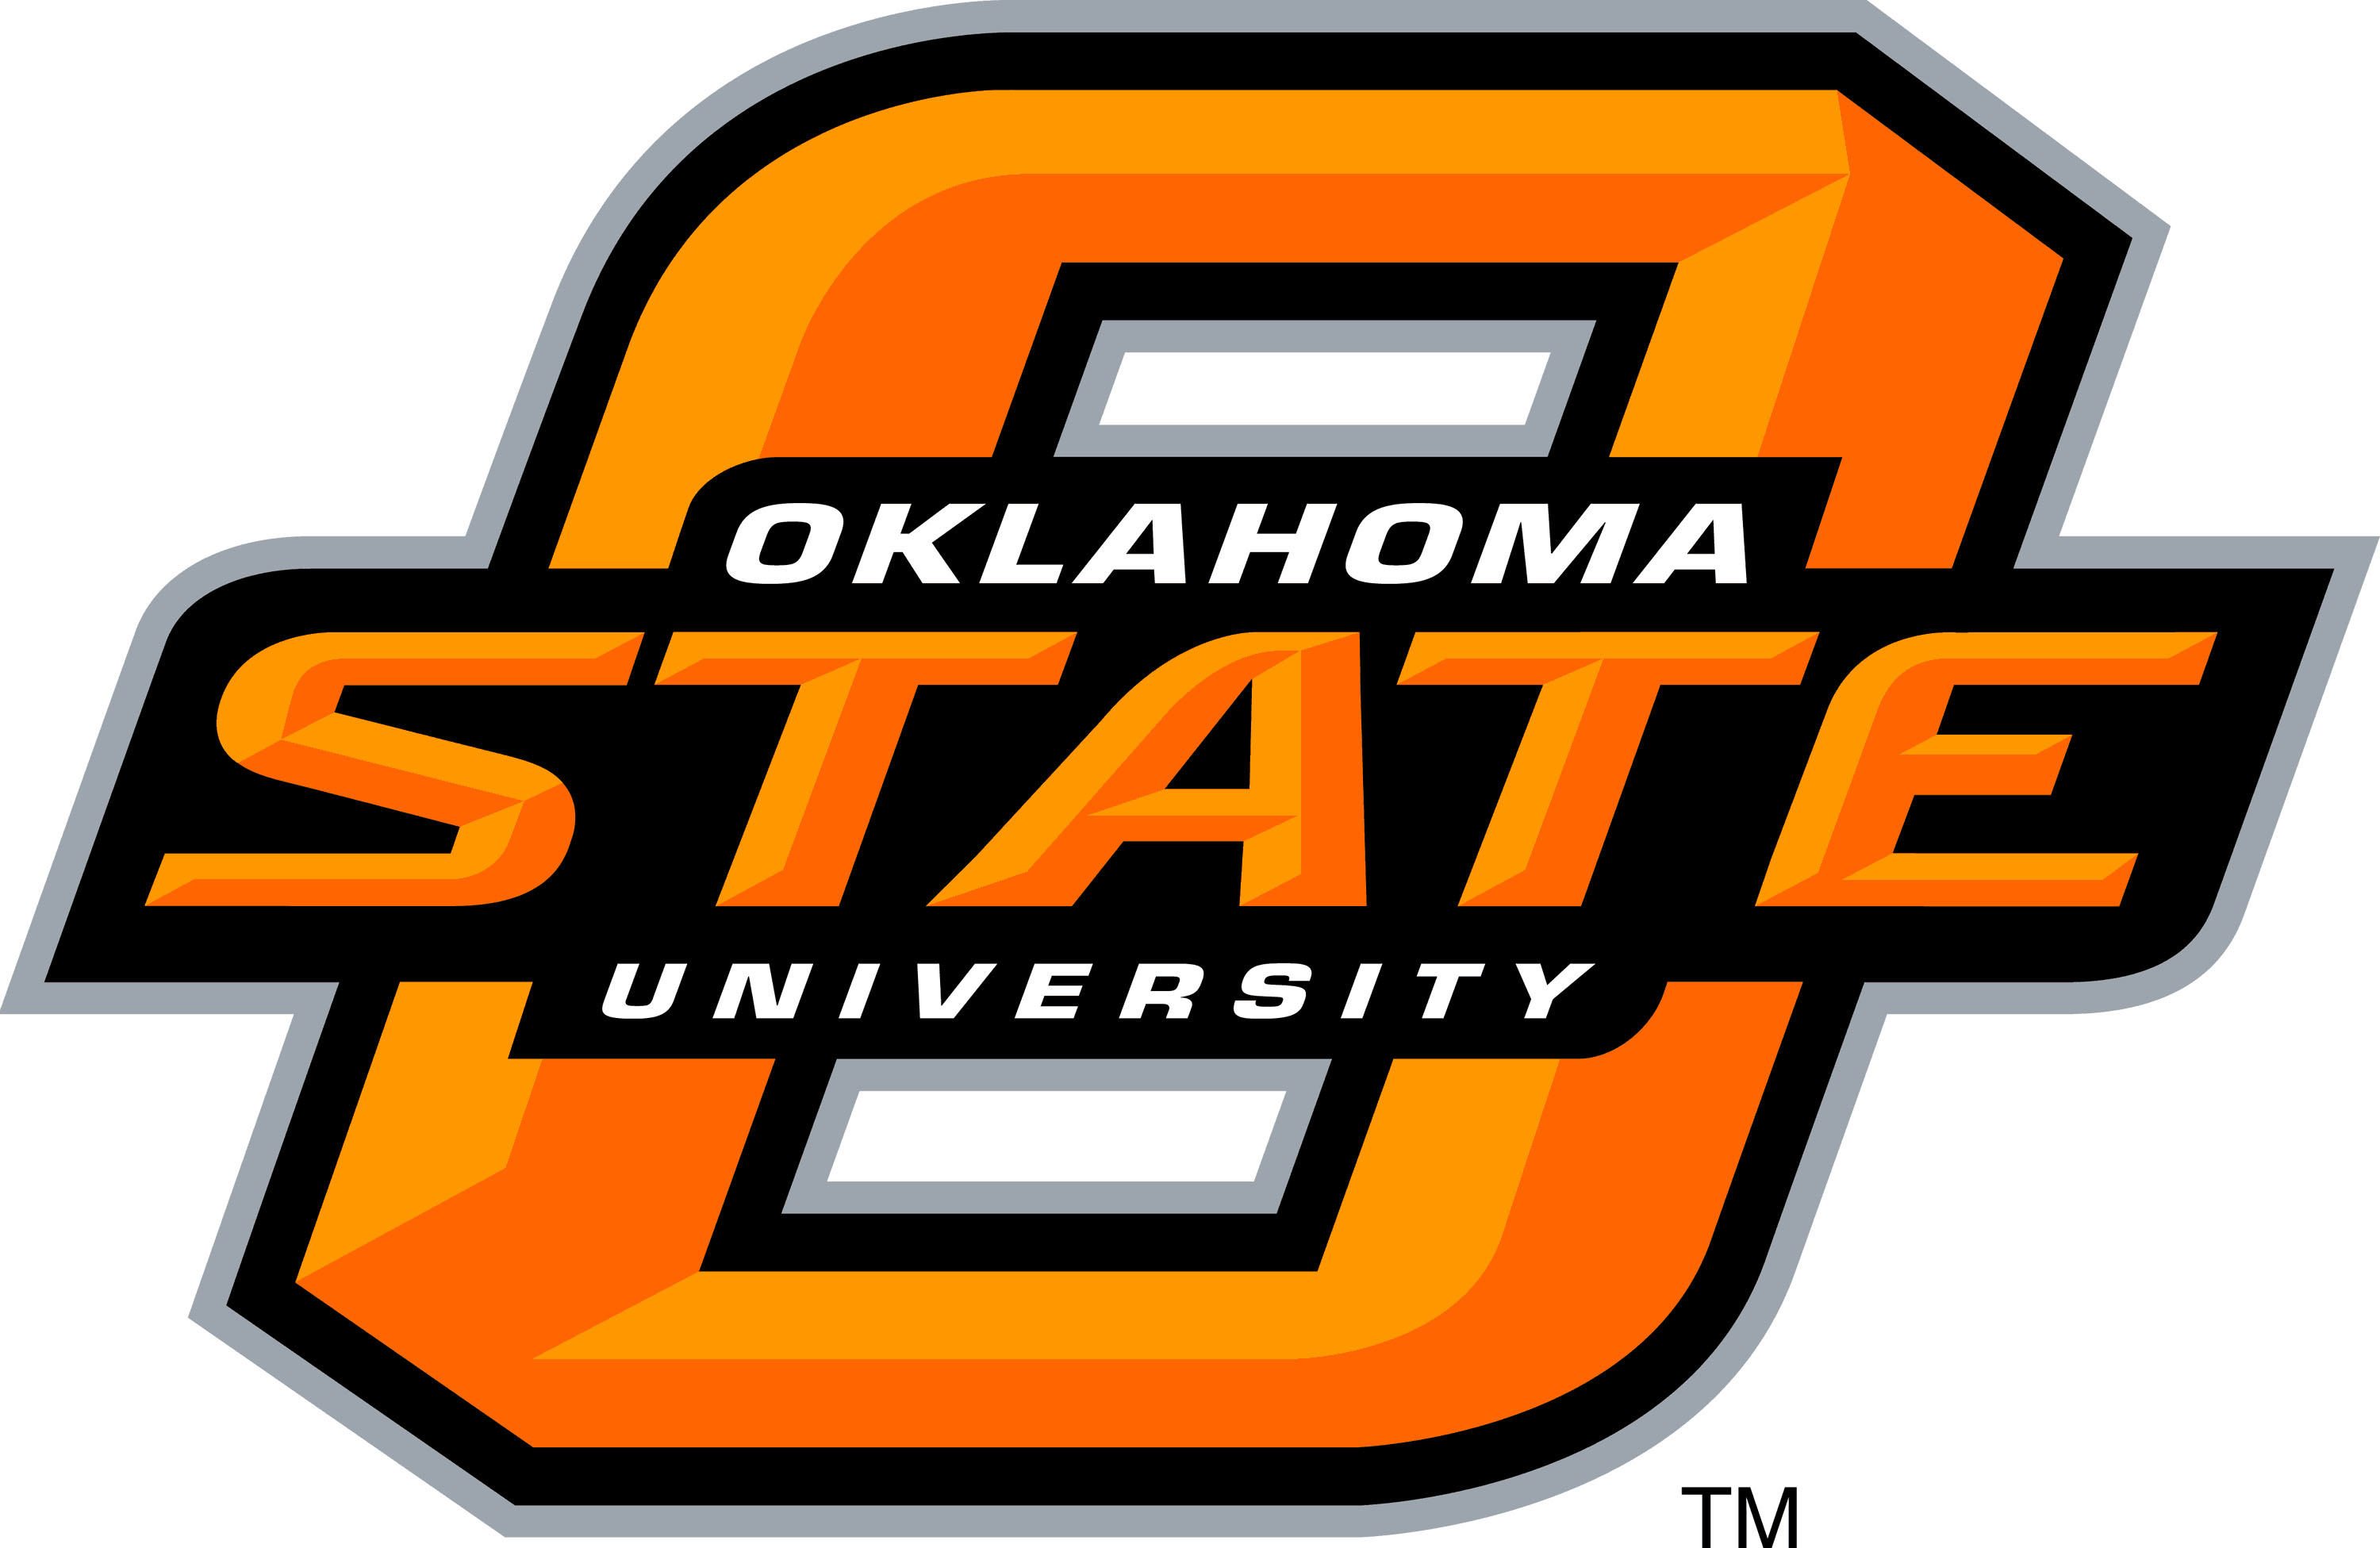 Oklahoma state university logo clipart jpg freeuse download Oklahoma State Clipart - Clipart Kid jpg freeuse download